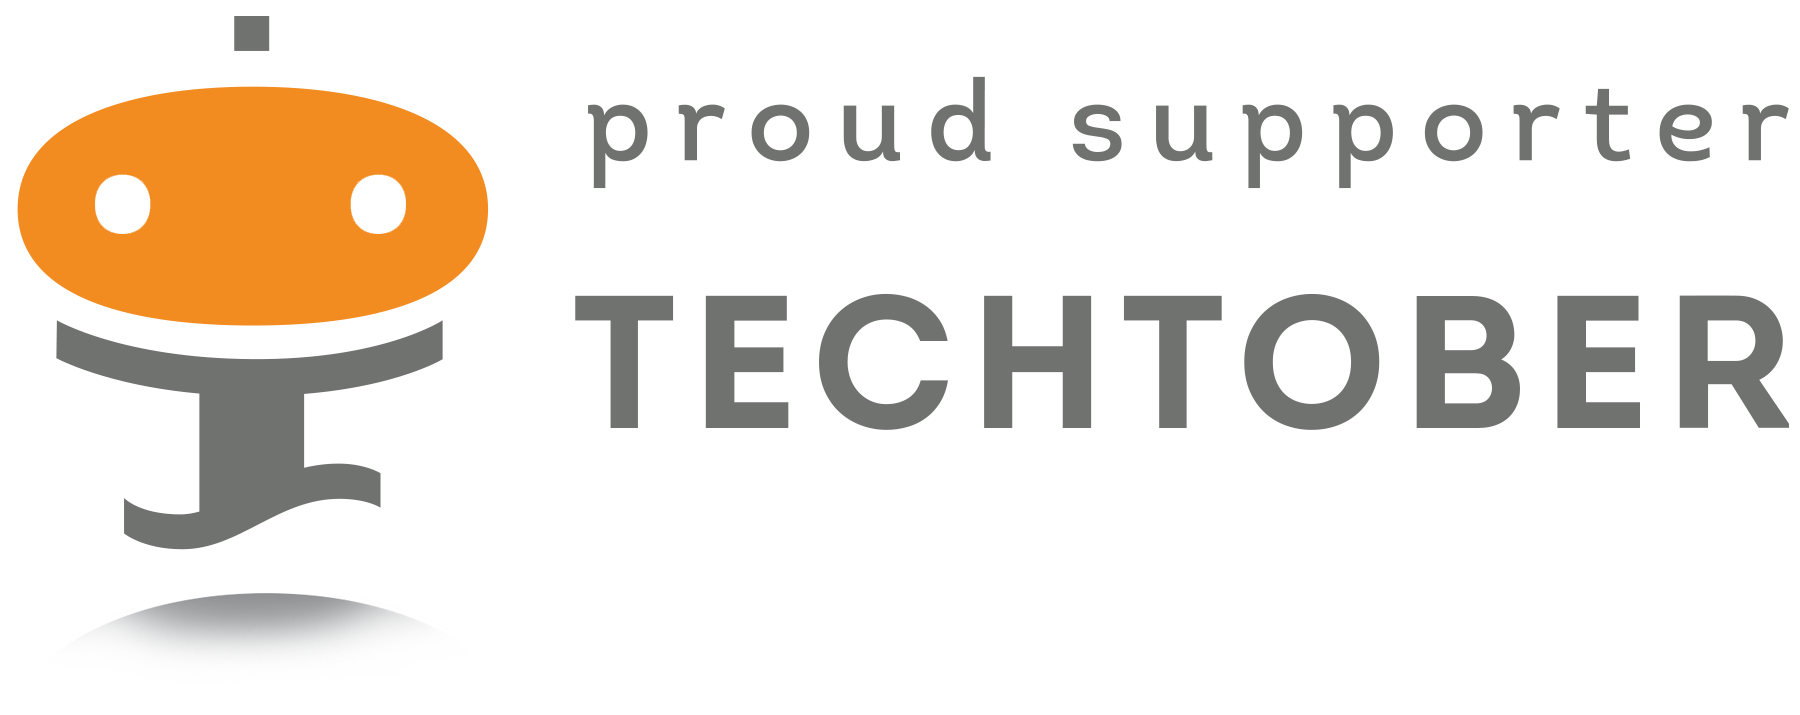 Proud supporter of techtober